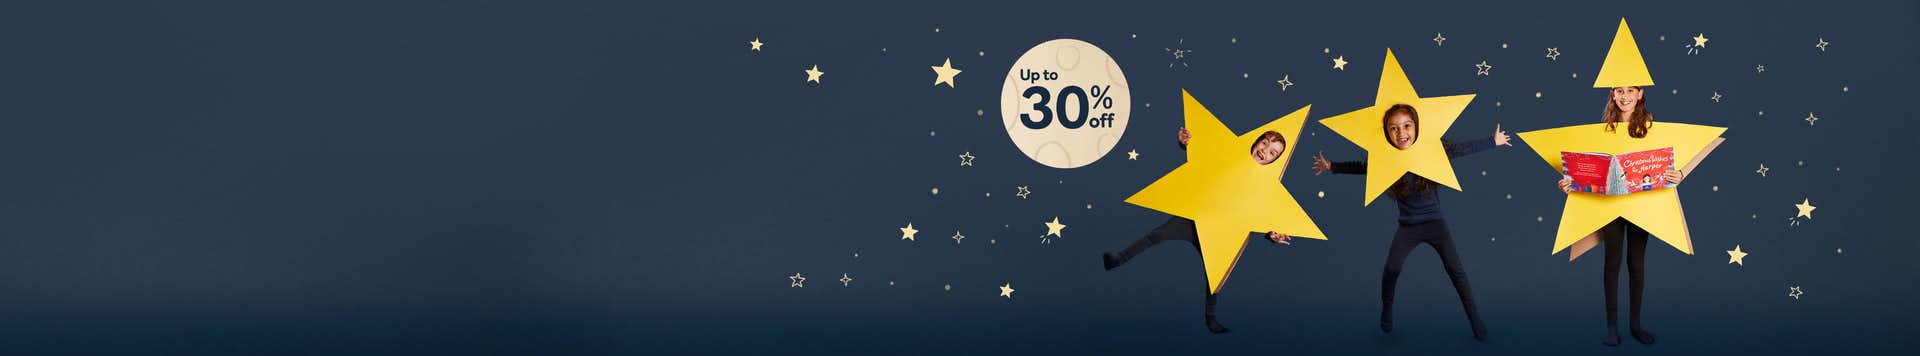 Up to 30% off personalised children's books